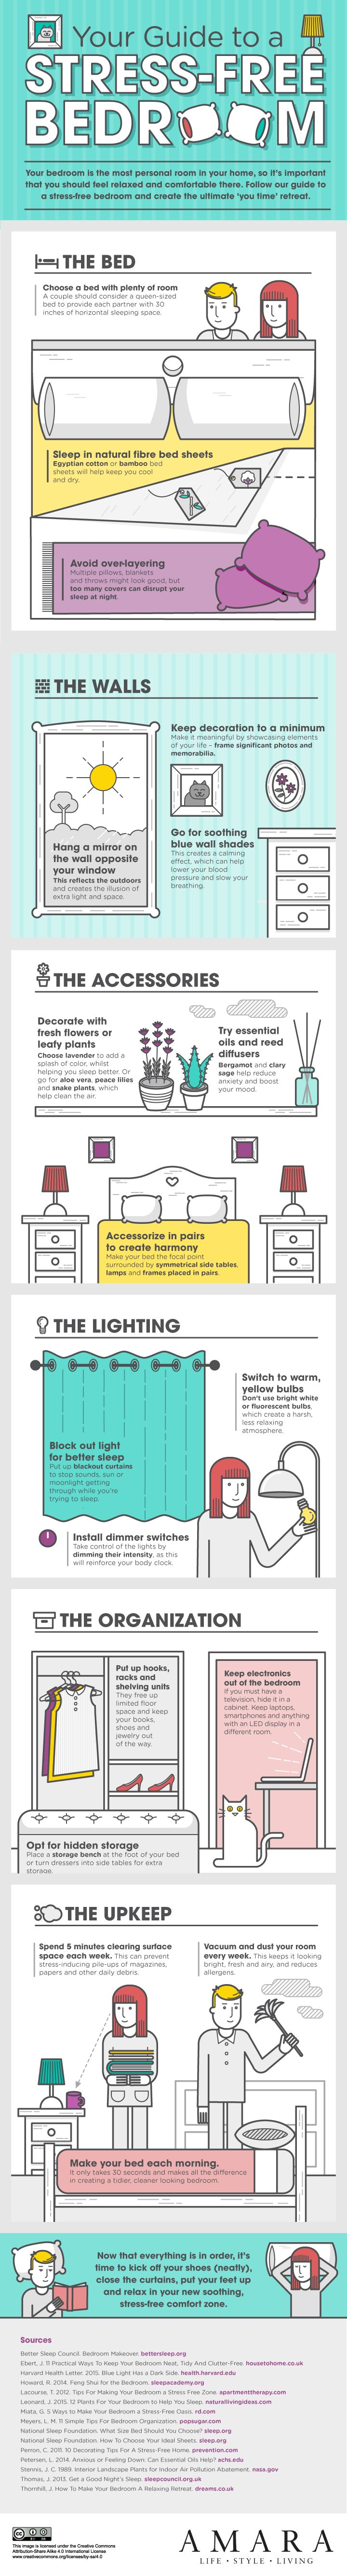 Your guide to a stress free bedroom